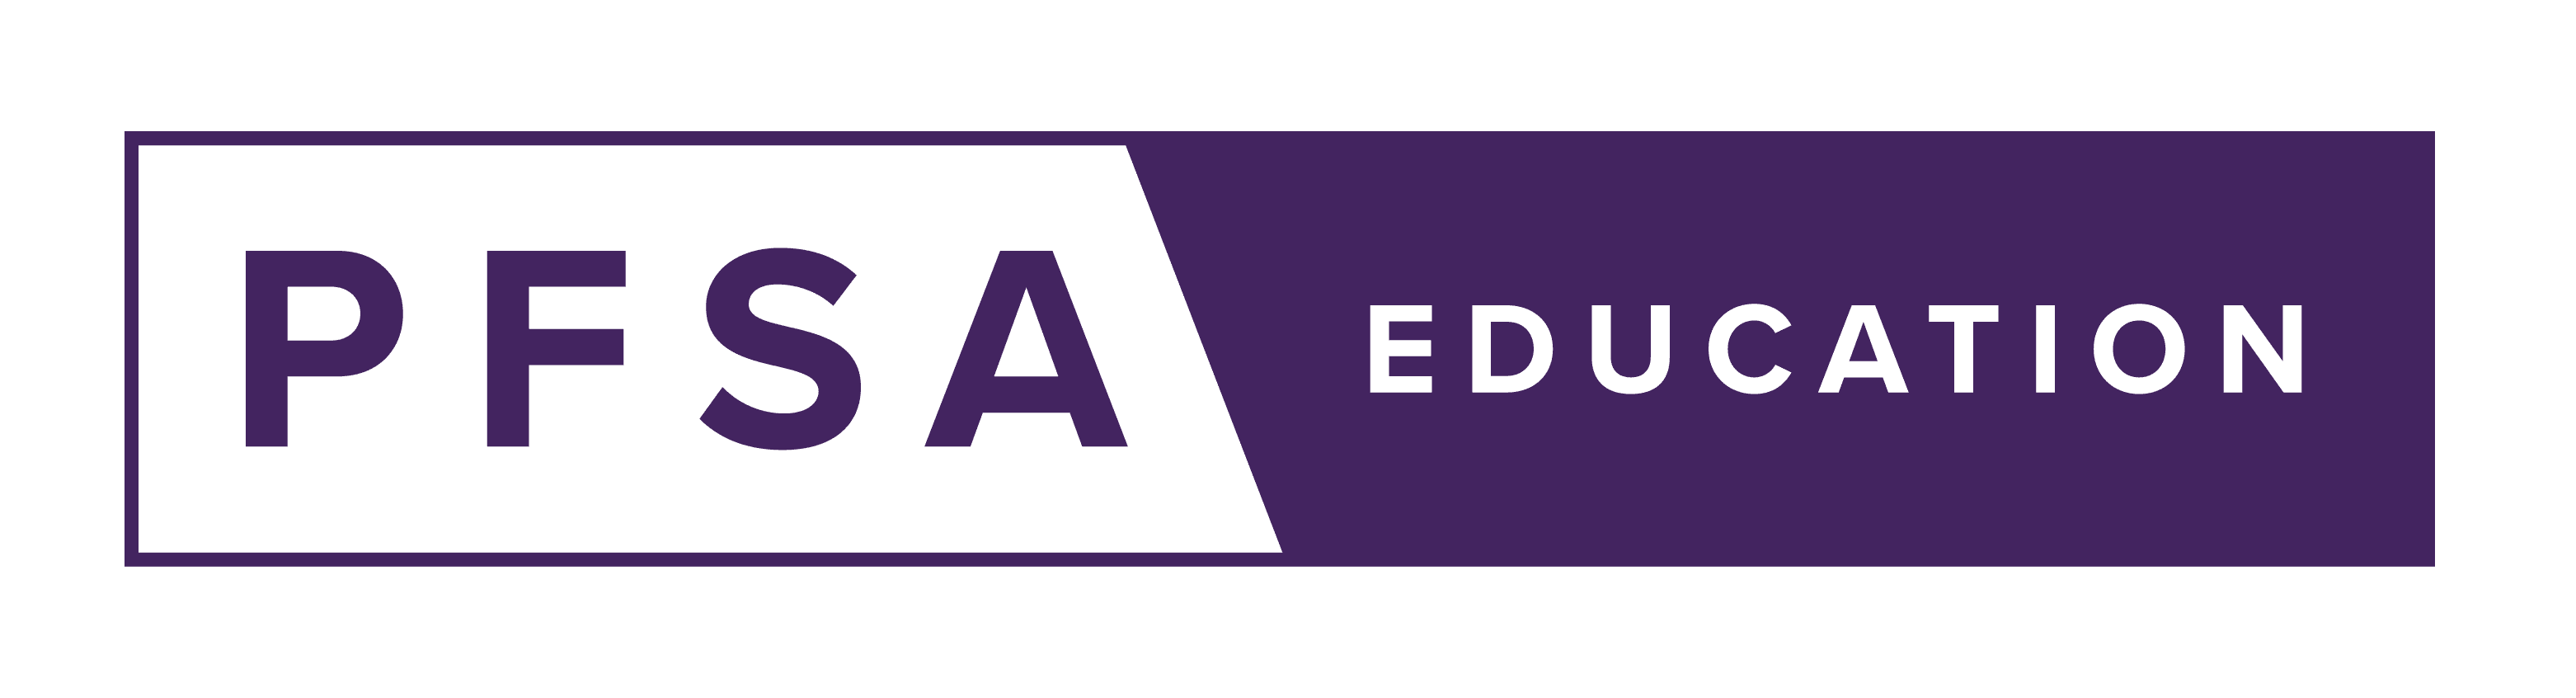 PFSA Education